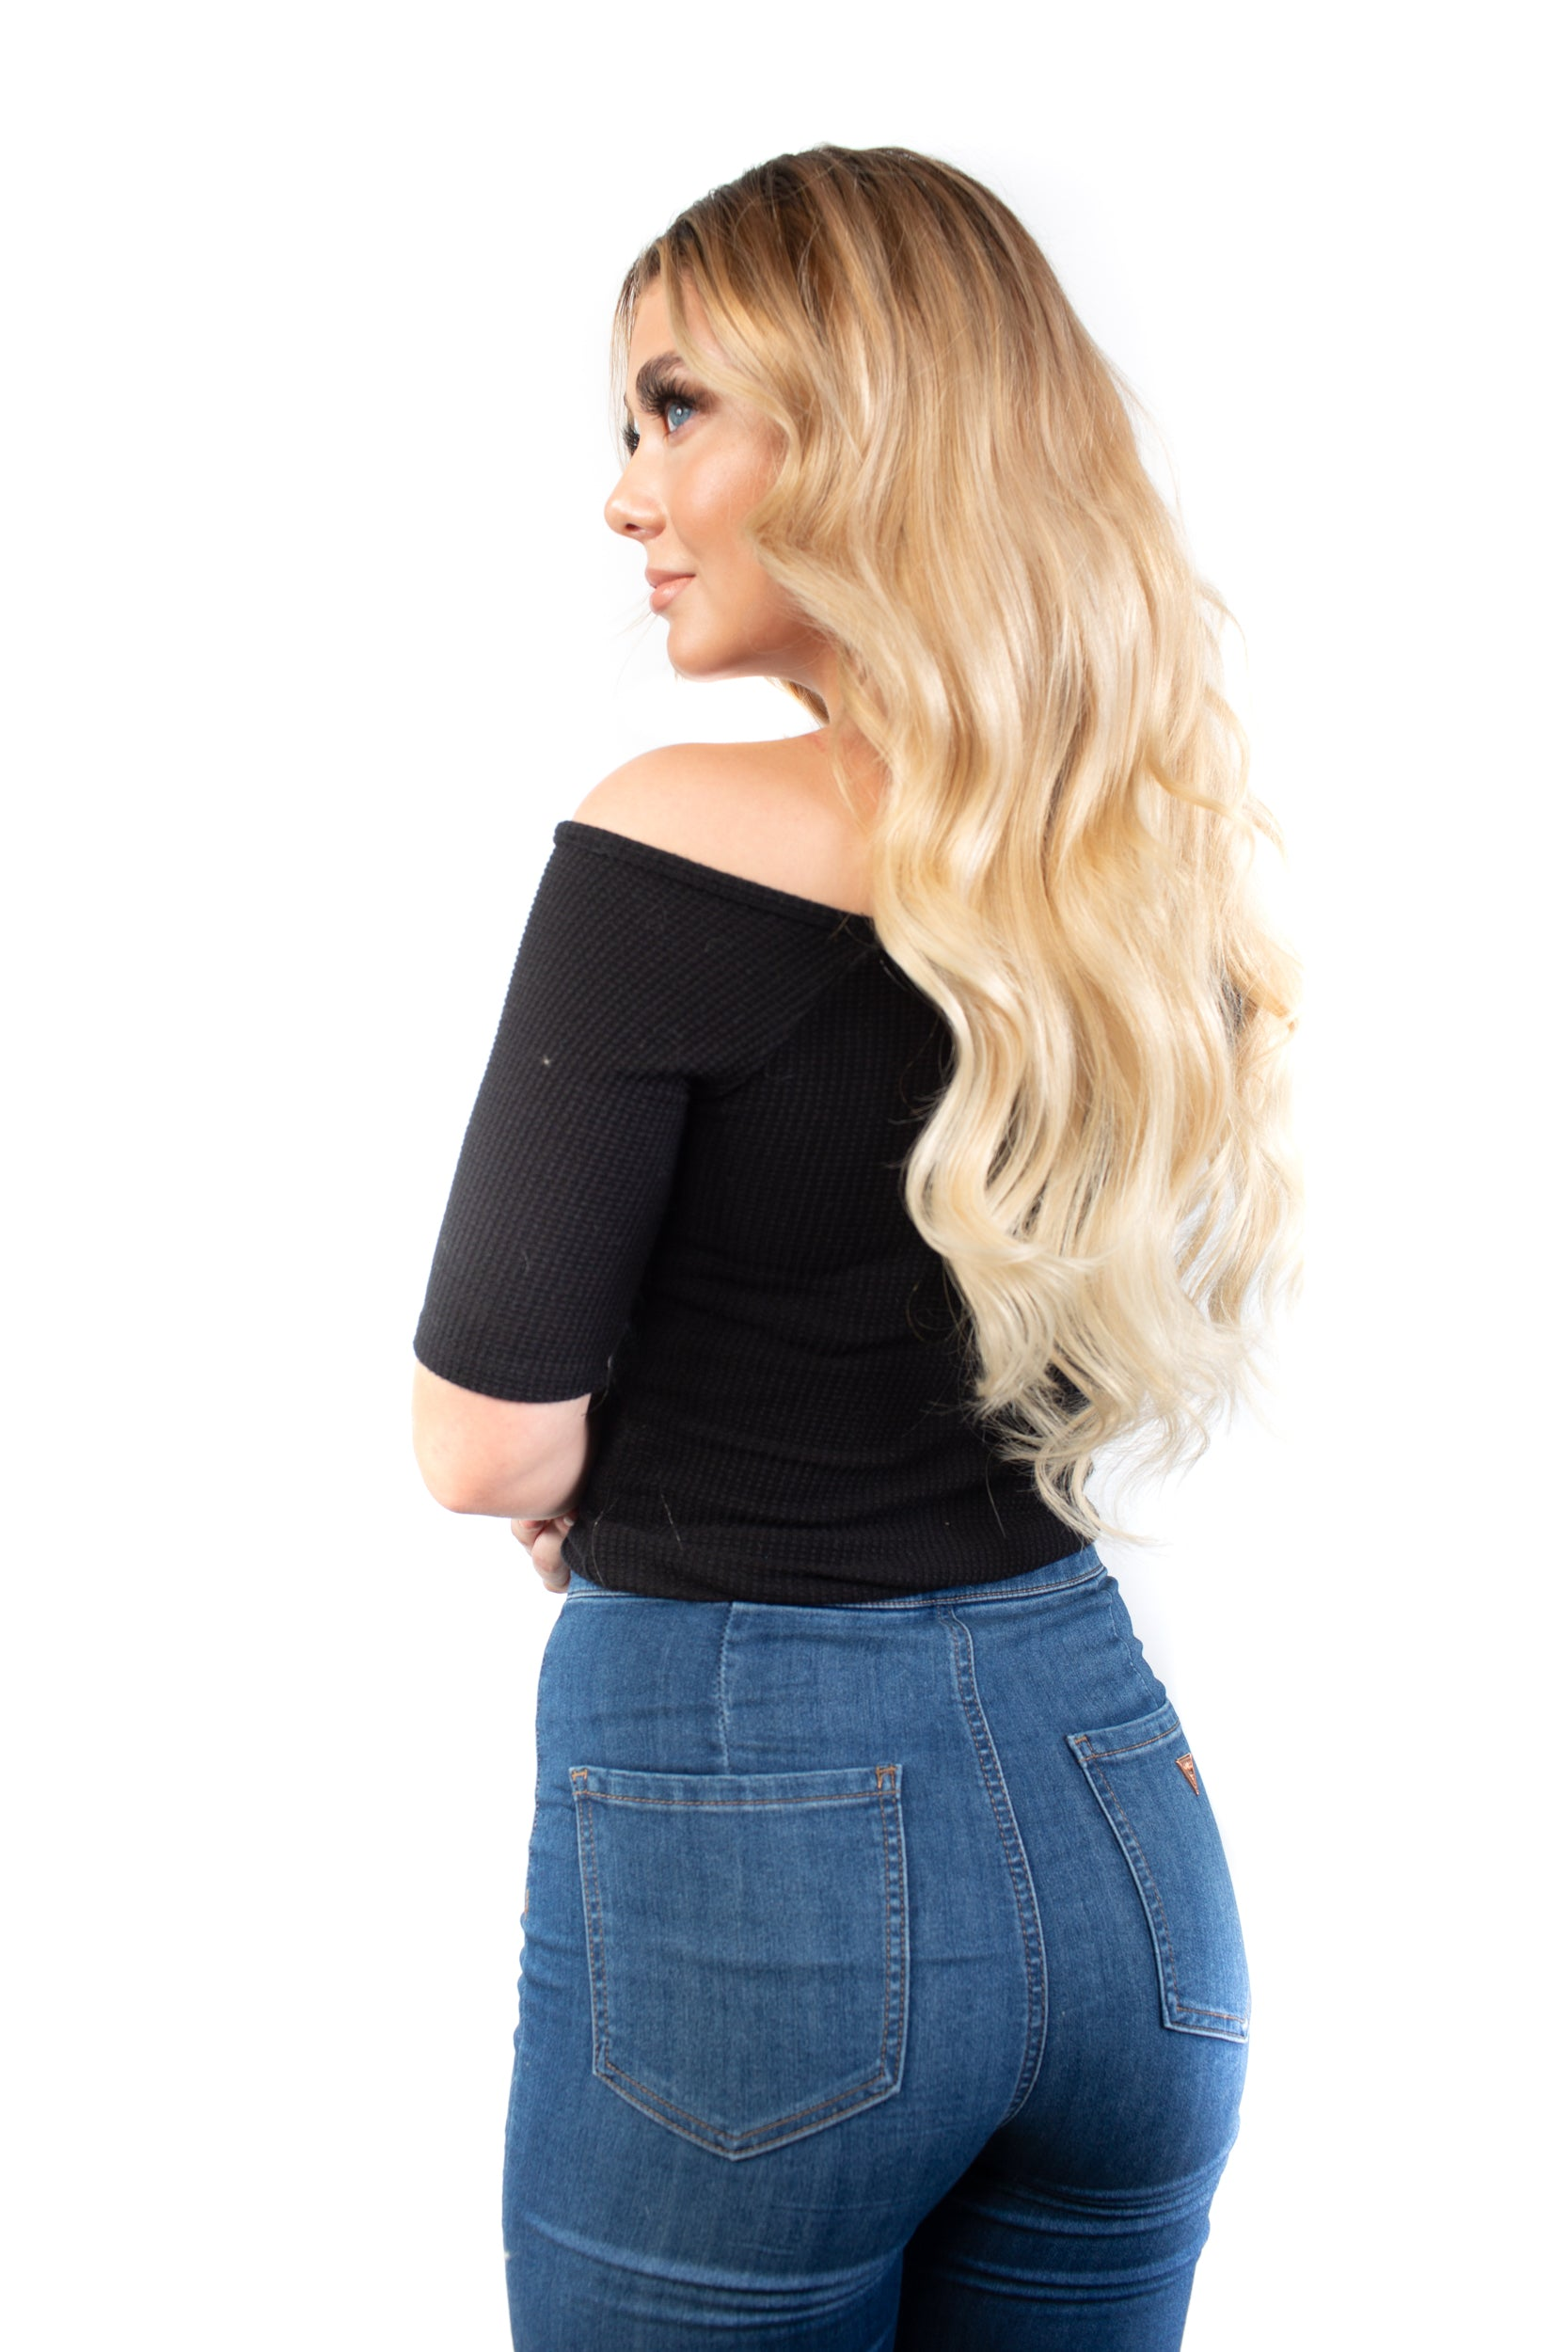 Clip-in hair extensions – Golden key